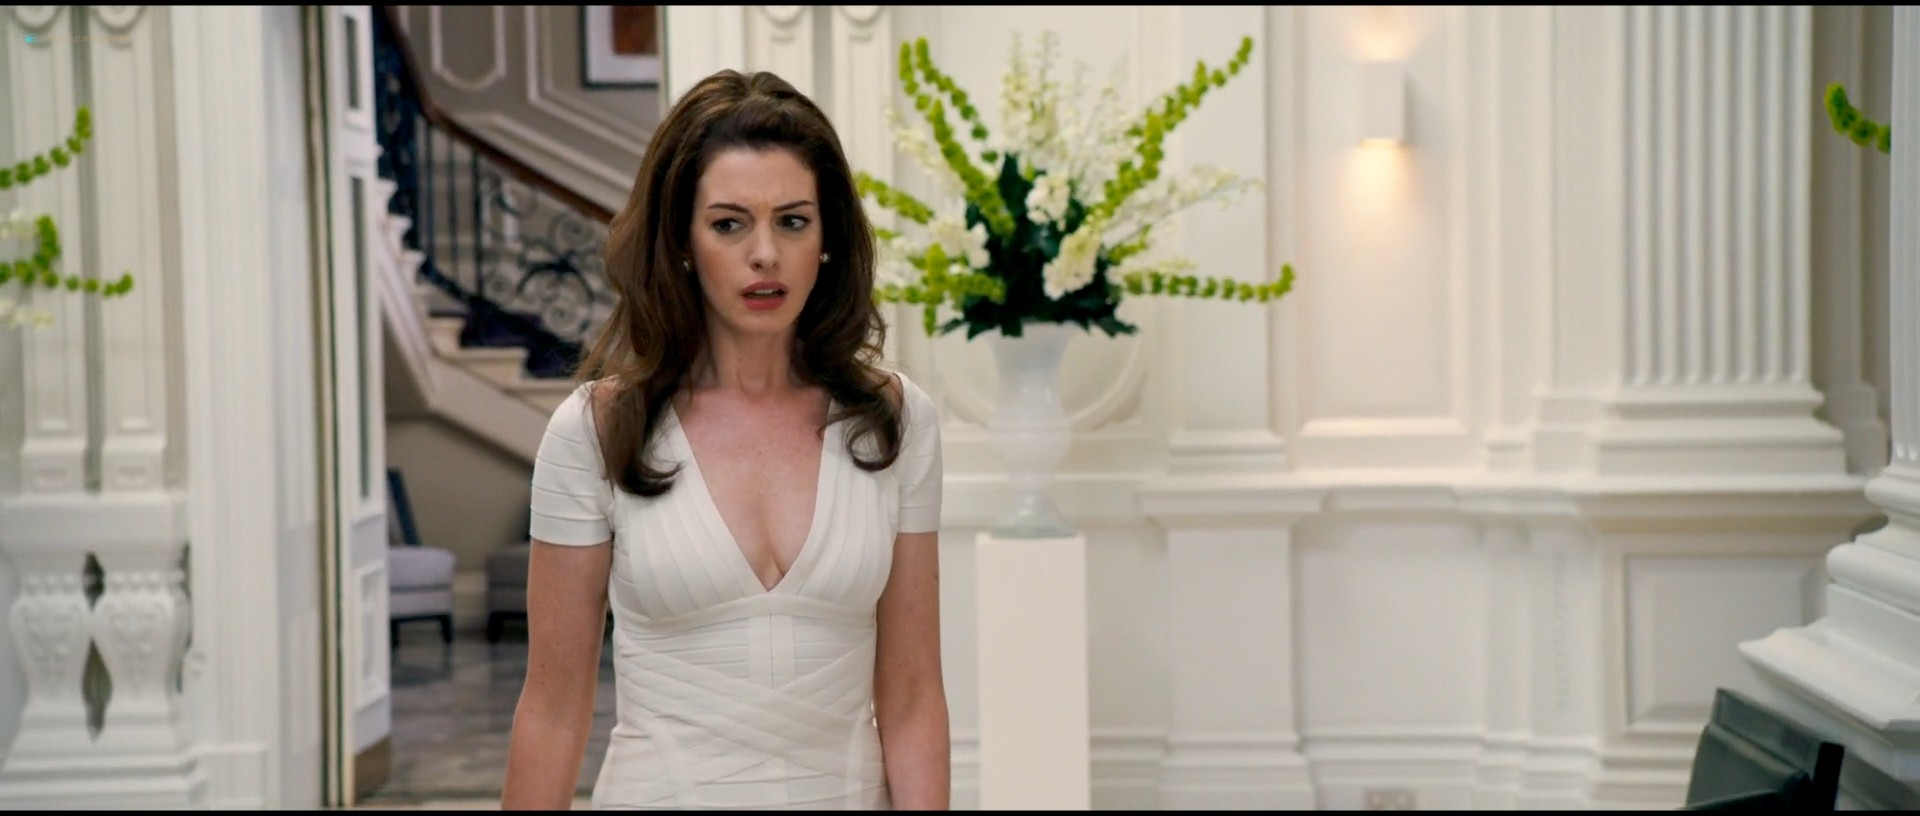 Anne Hathaway hot and sexy - The Hustle (2019) HD 1080p Web (9)